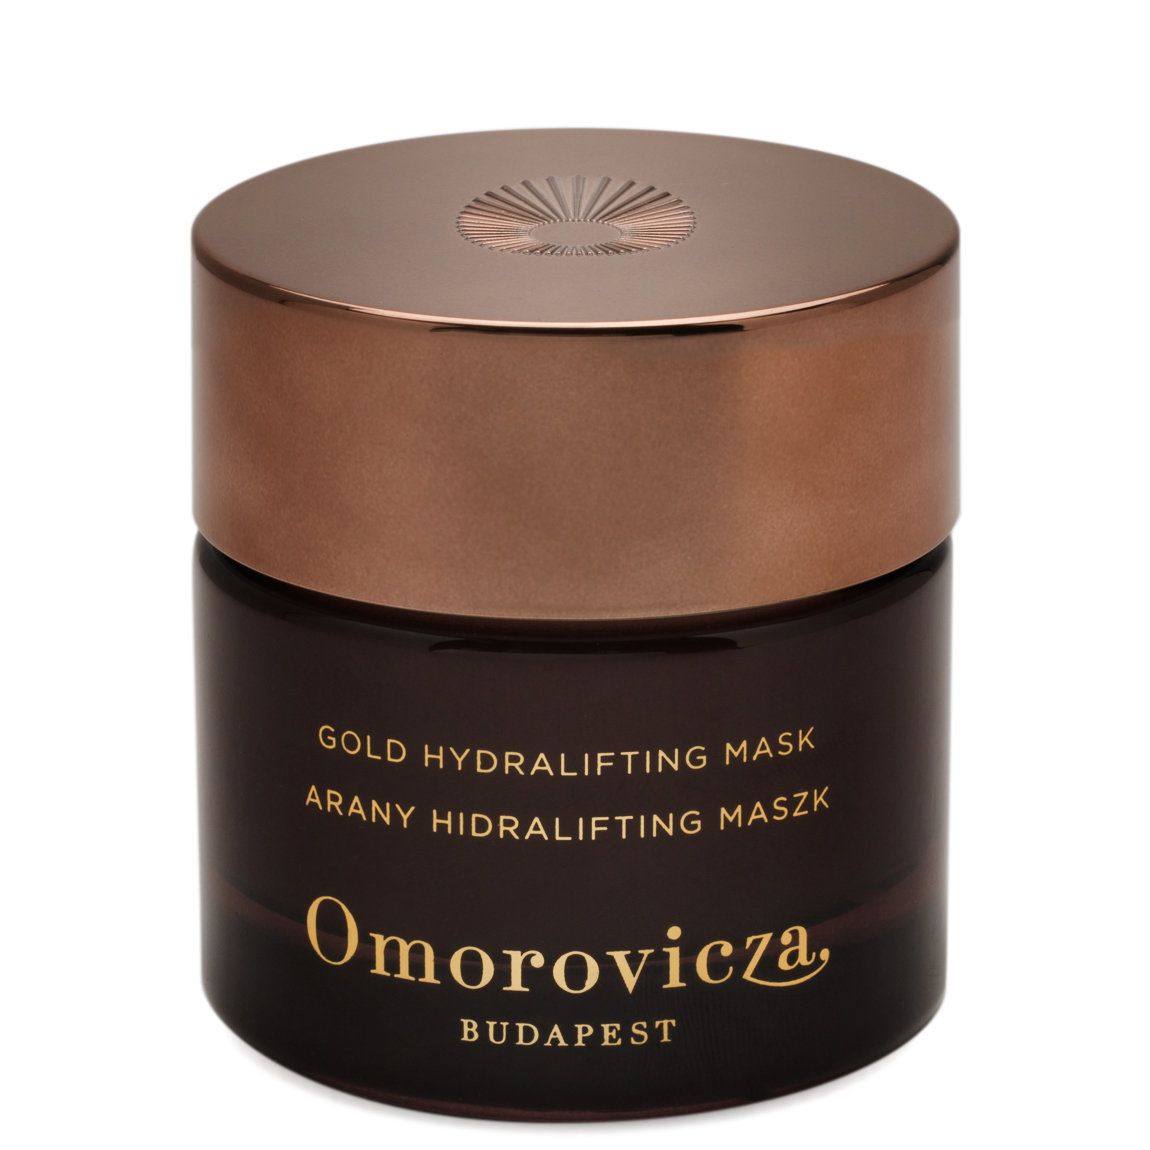 Omorovicza Gold Hydralifting Mask product swatch.